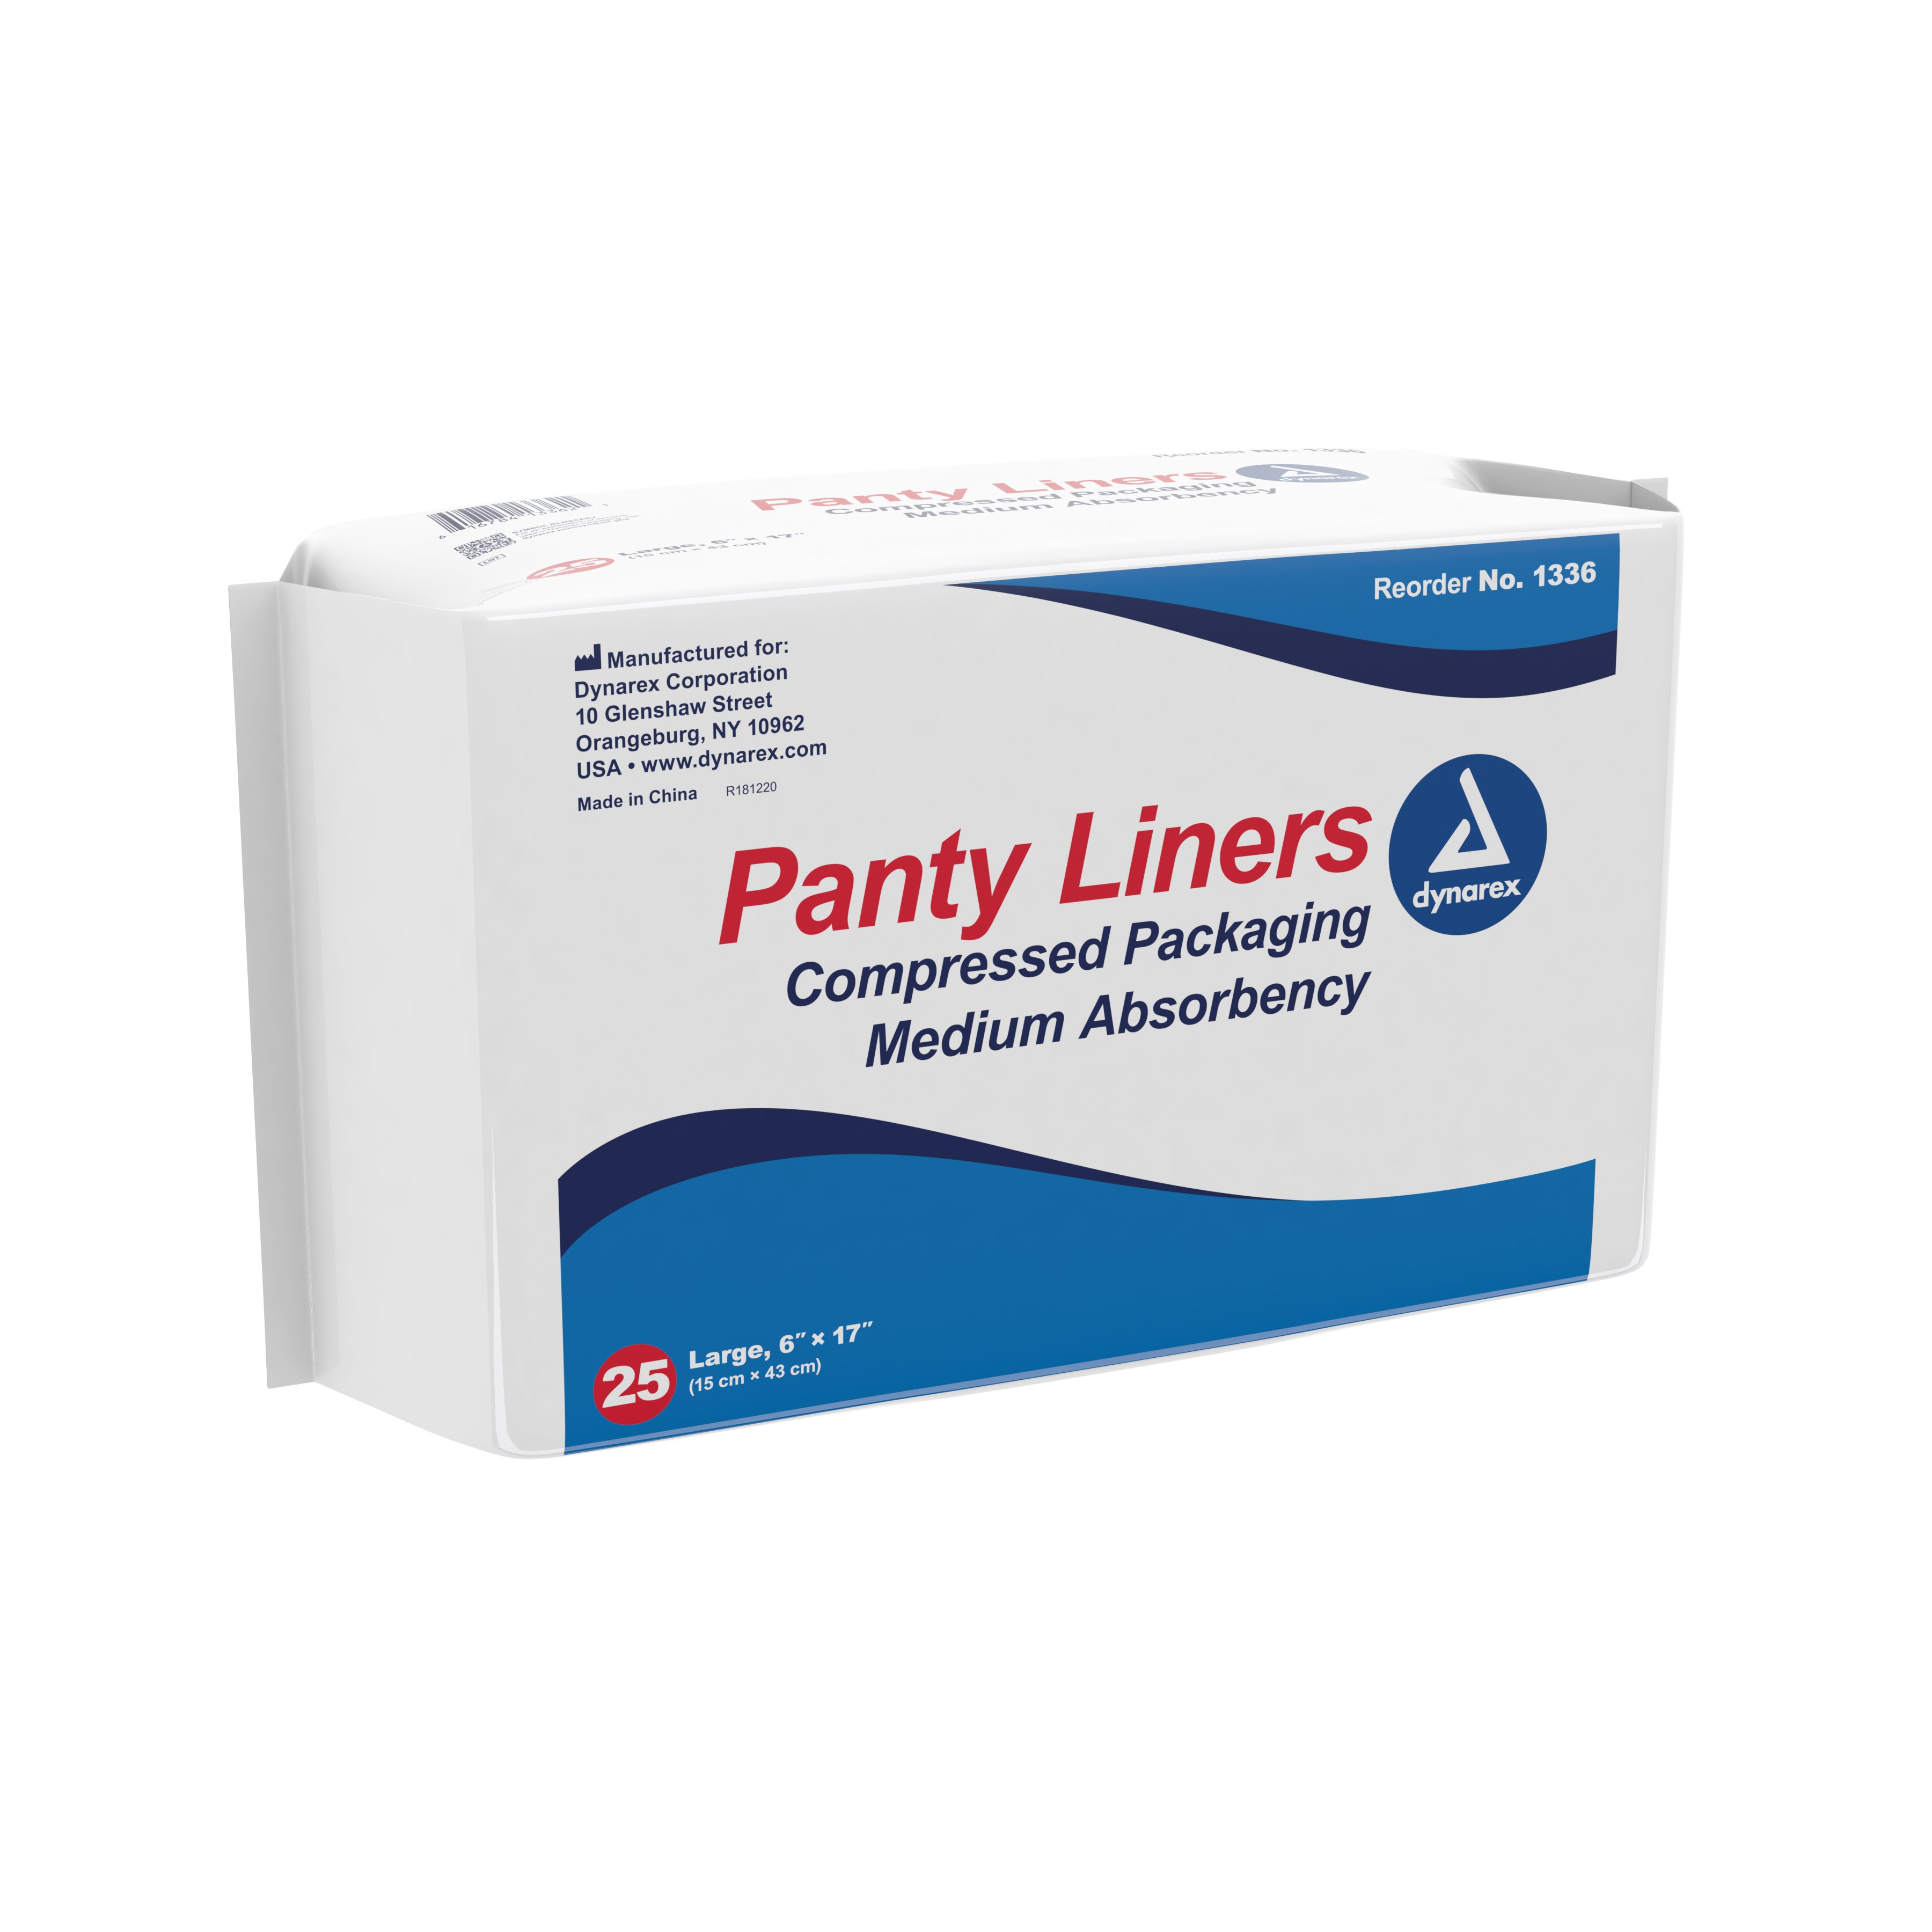 """Dynarex Panty Liners, Moderate Absorbency, 1336, 6 X 17"""" - Pack of 25"""